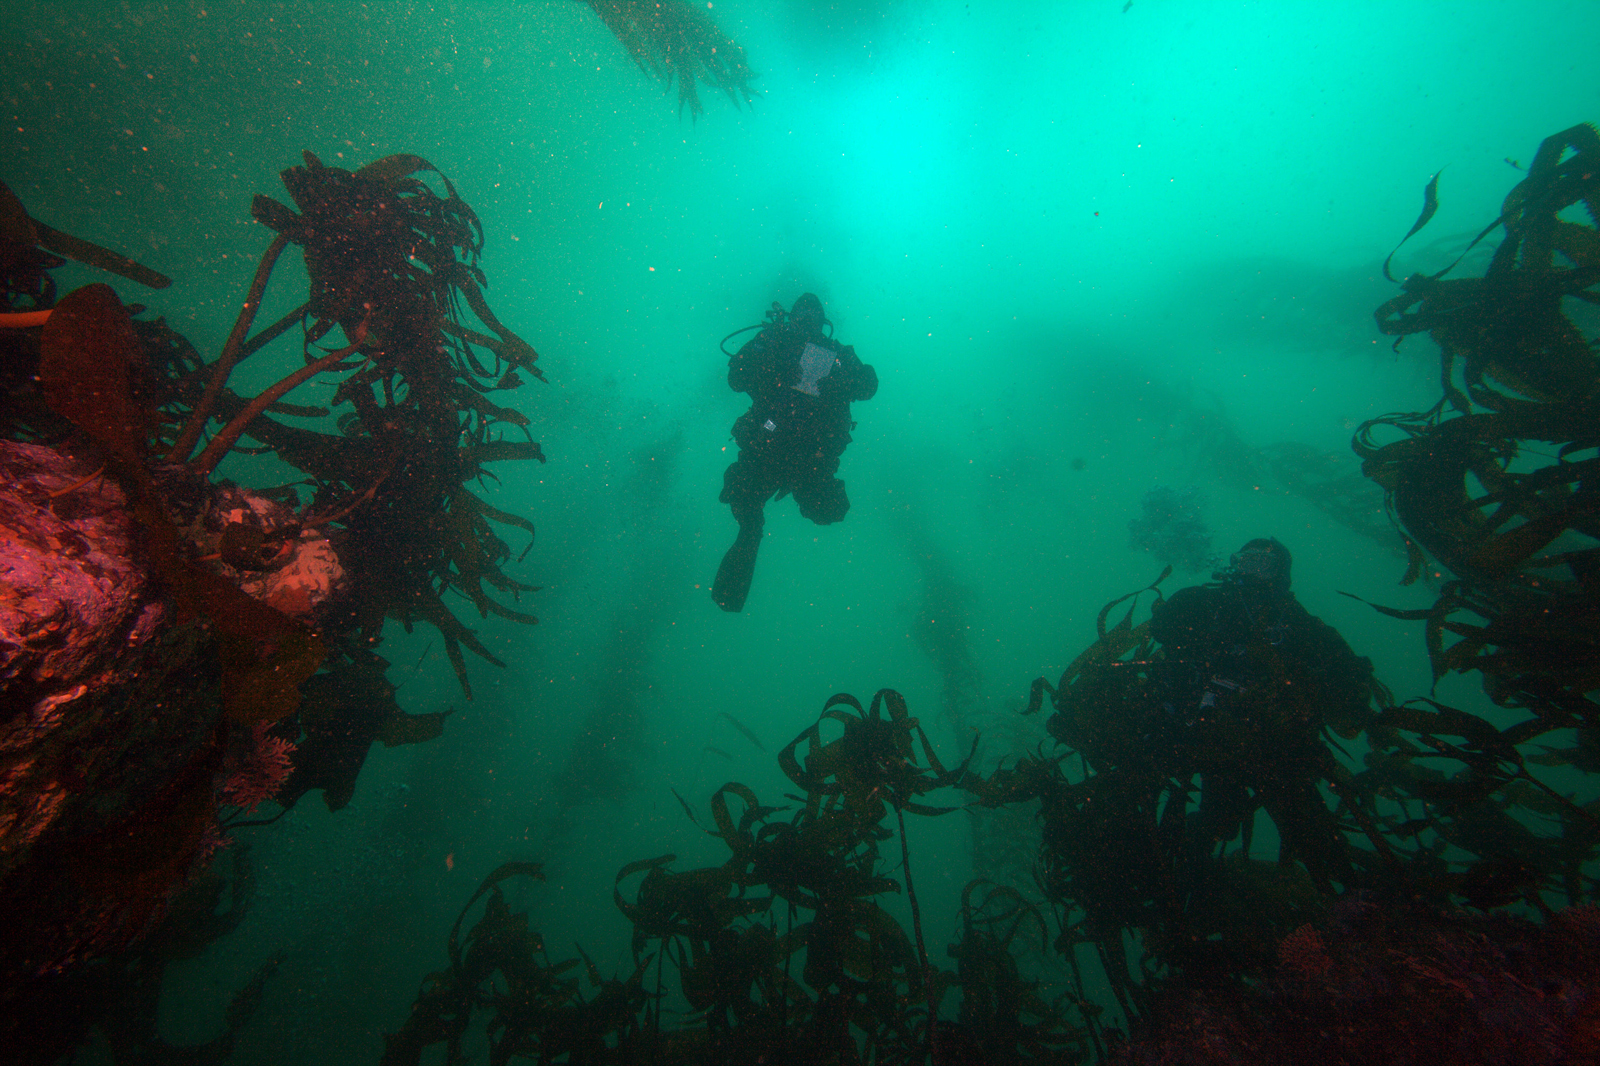 diver underwater kelp forest - Chad King / NOAA MBNMS